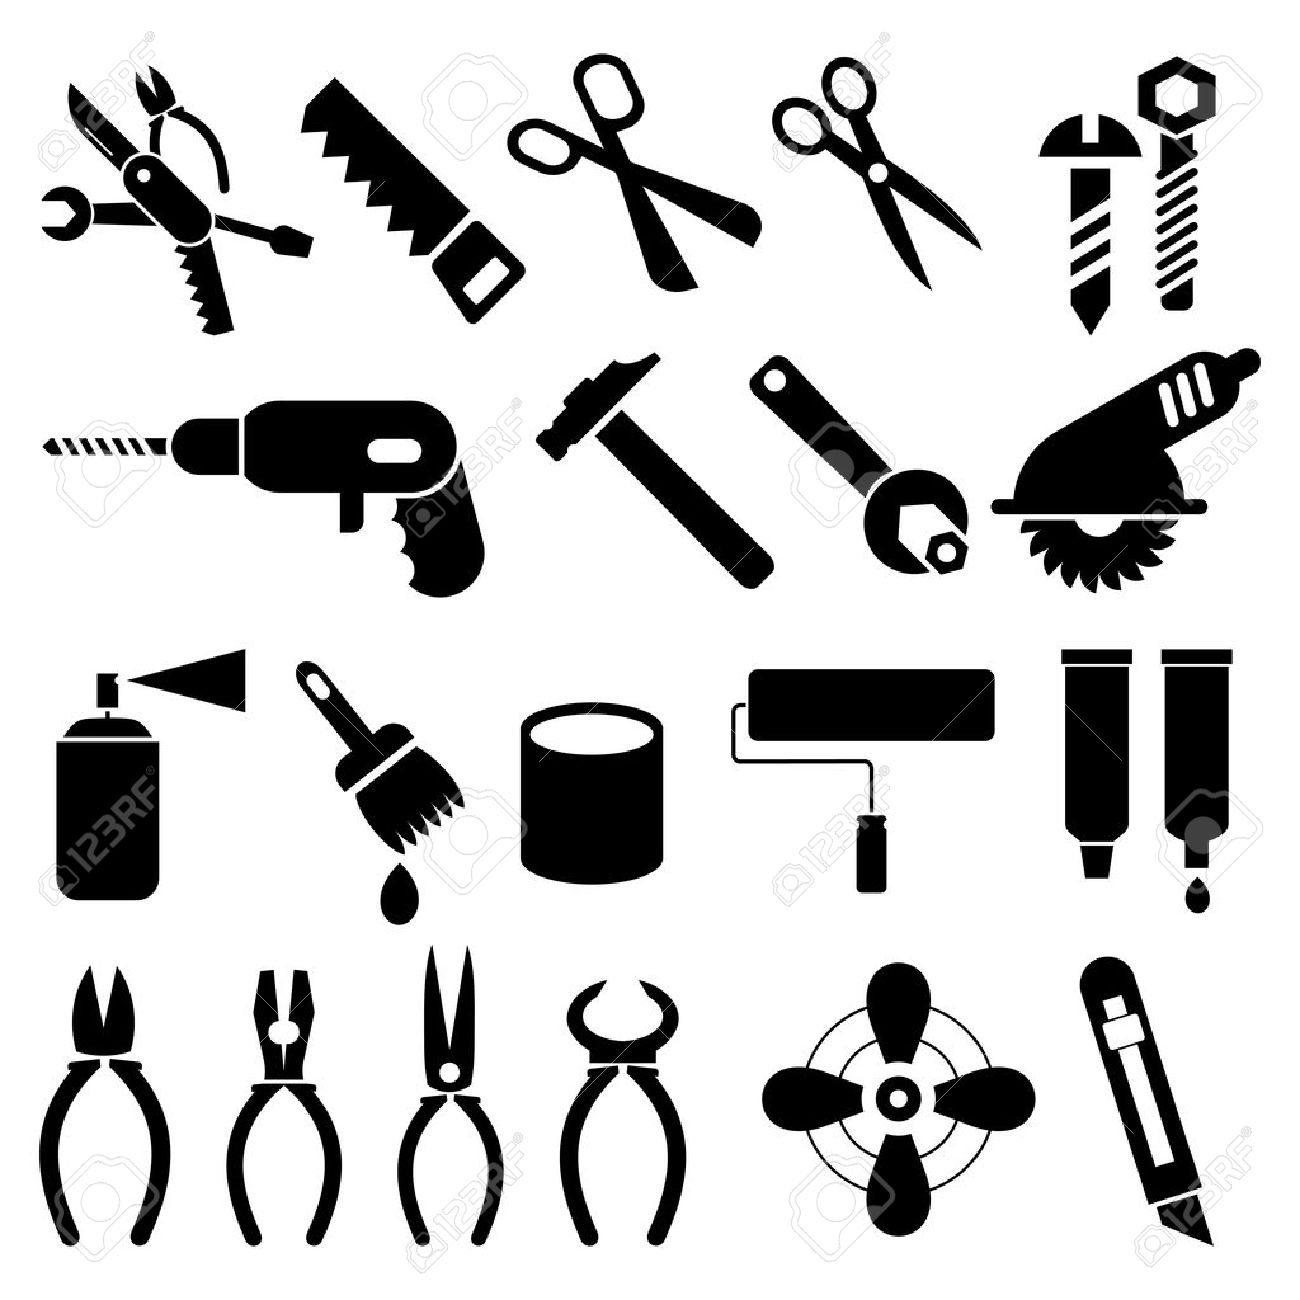 Pictogram people with tools vector by alexghidan89 - Image ...